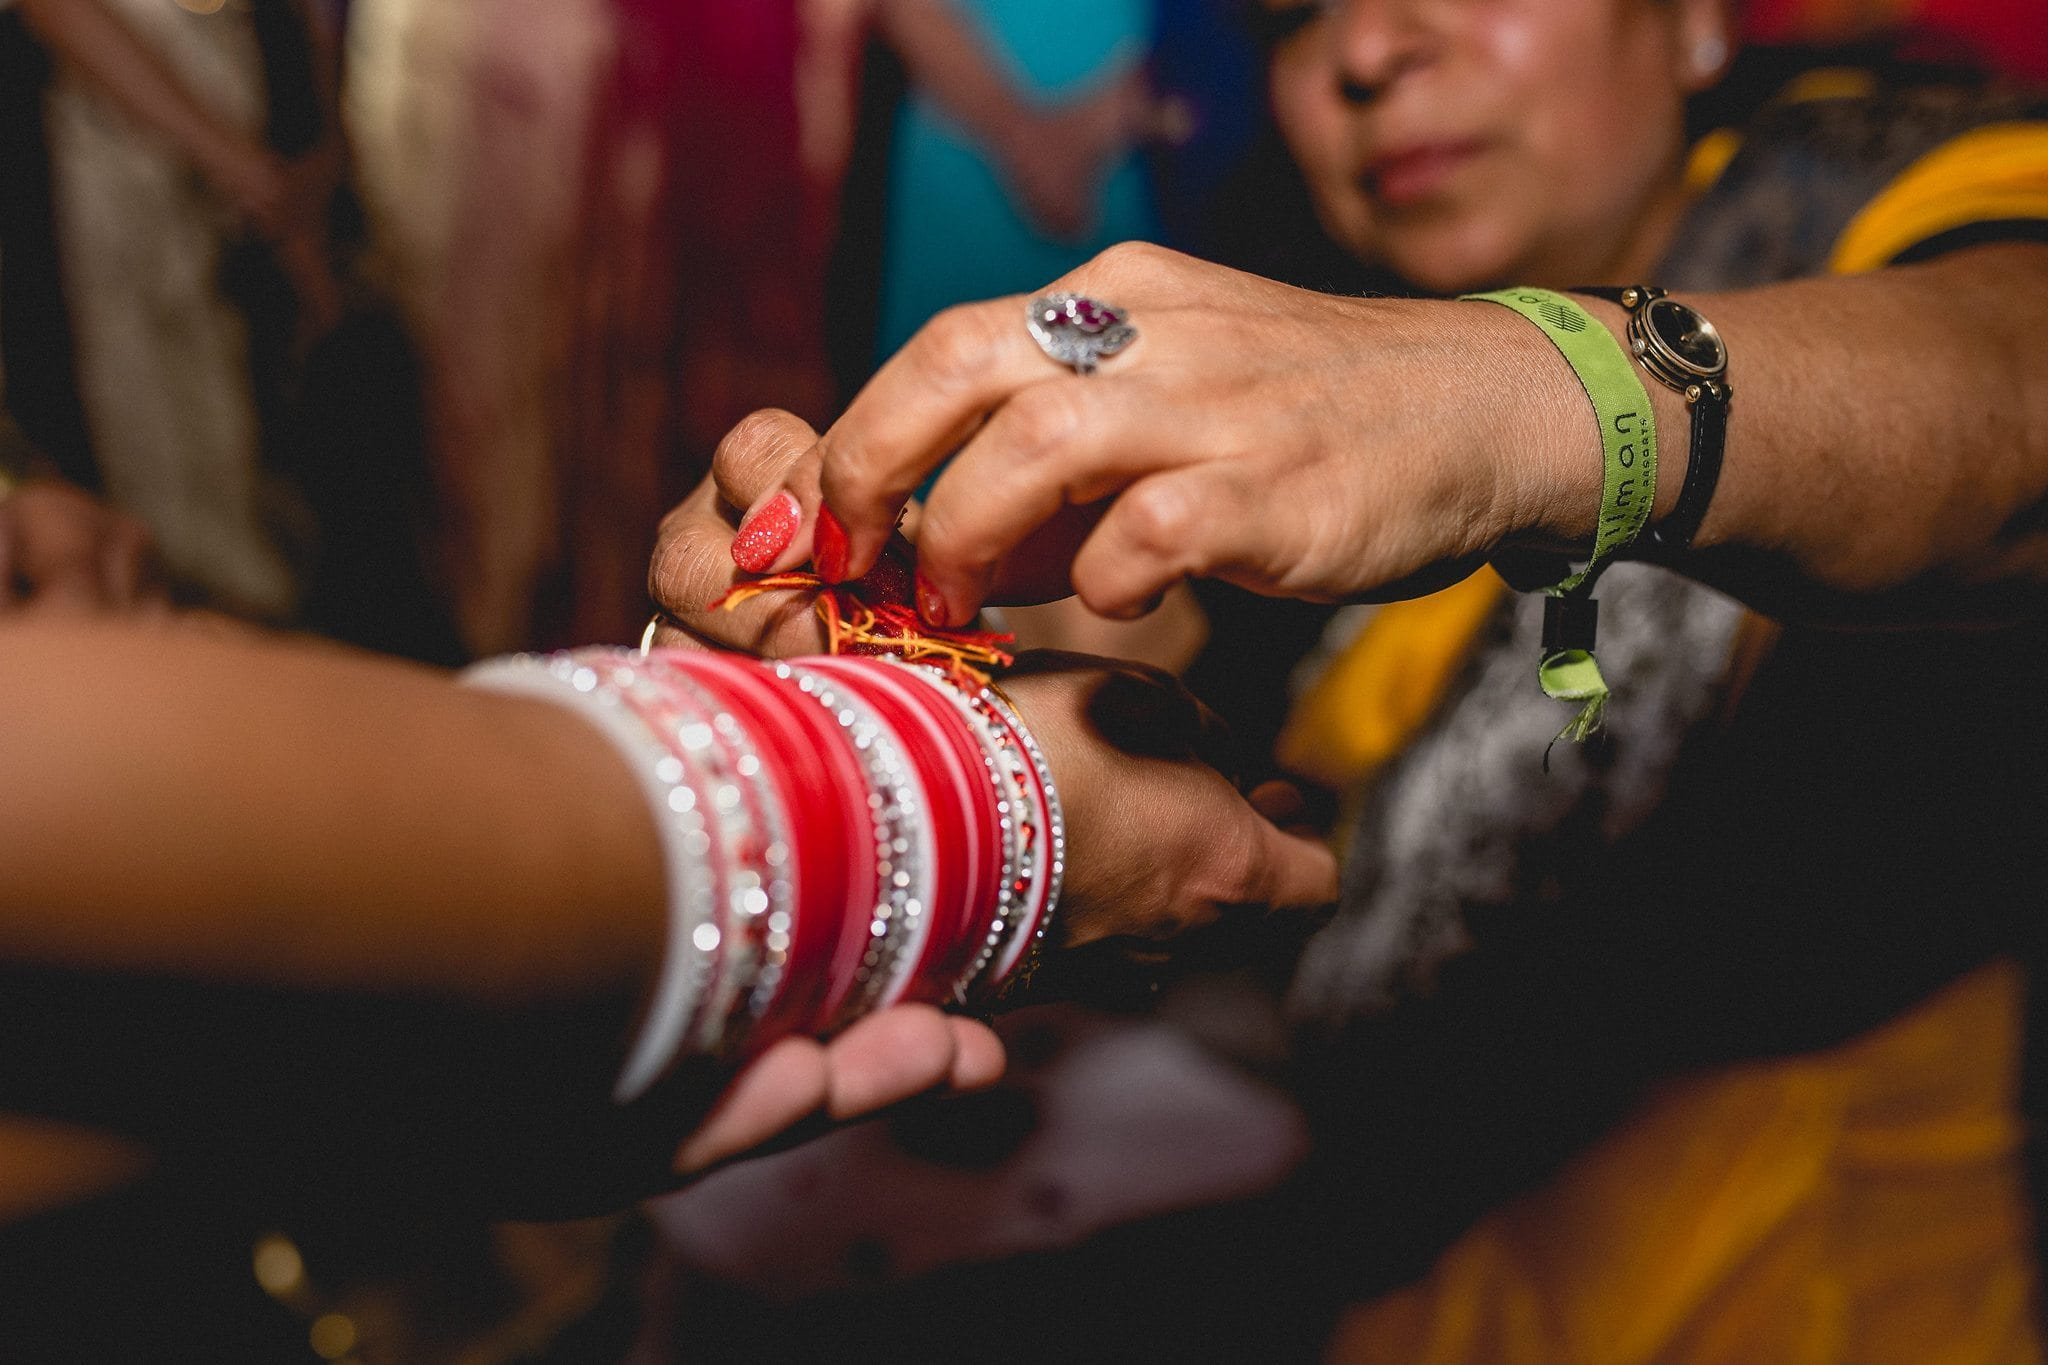 Red thread is tied around the bride's wrist during the Hindu part of the ceremony